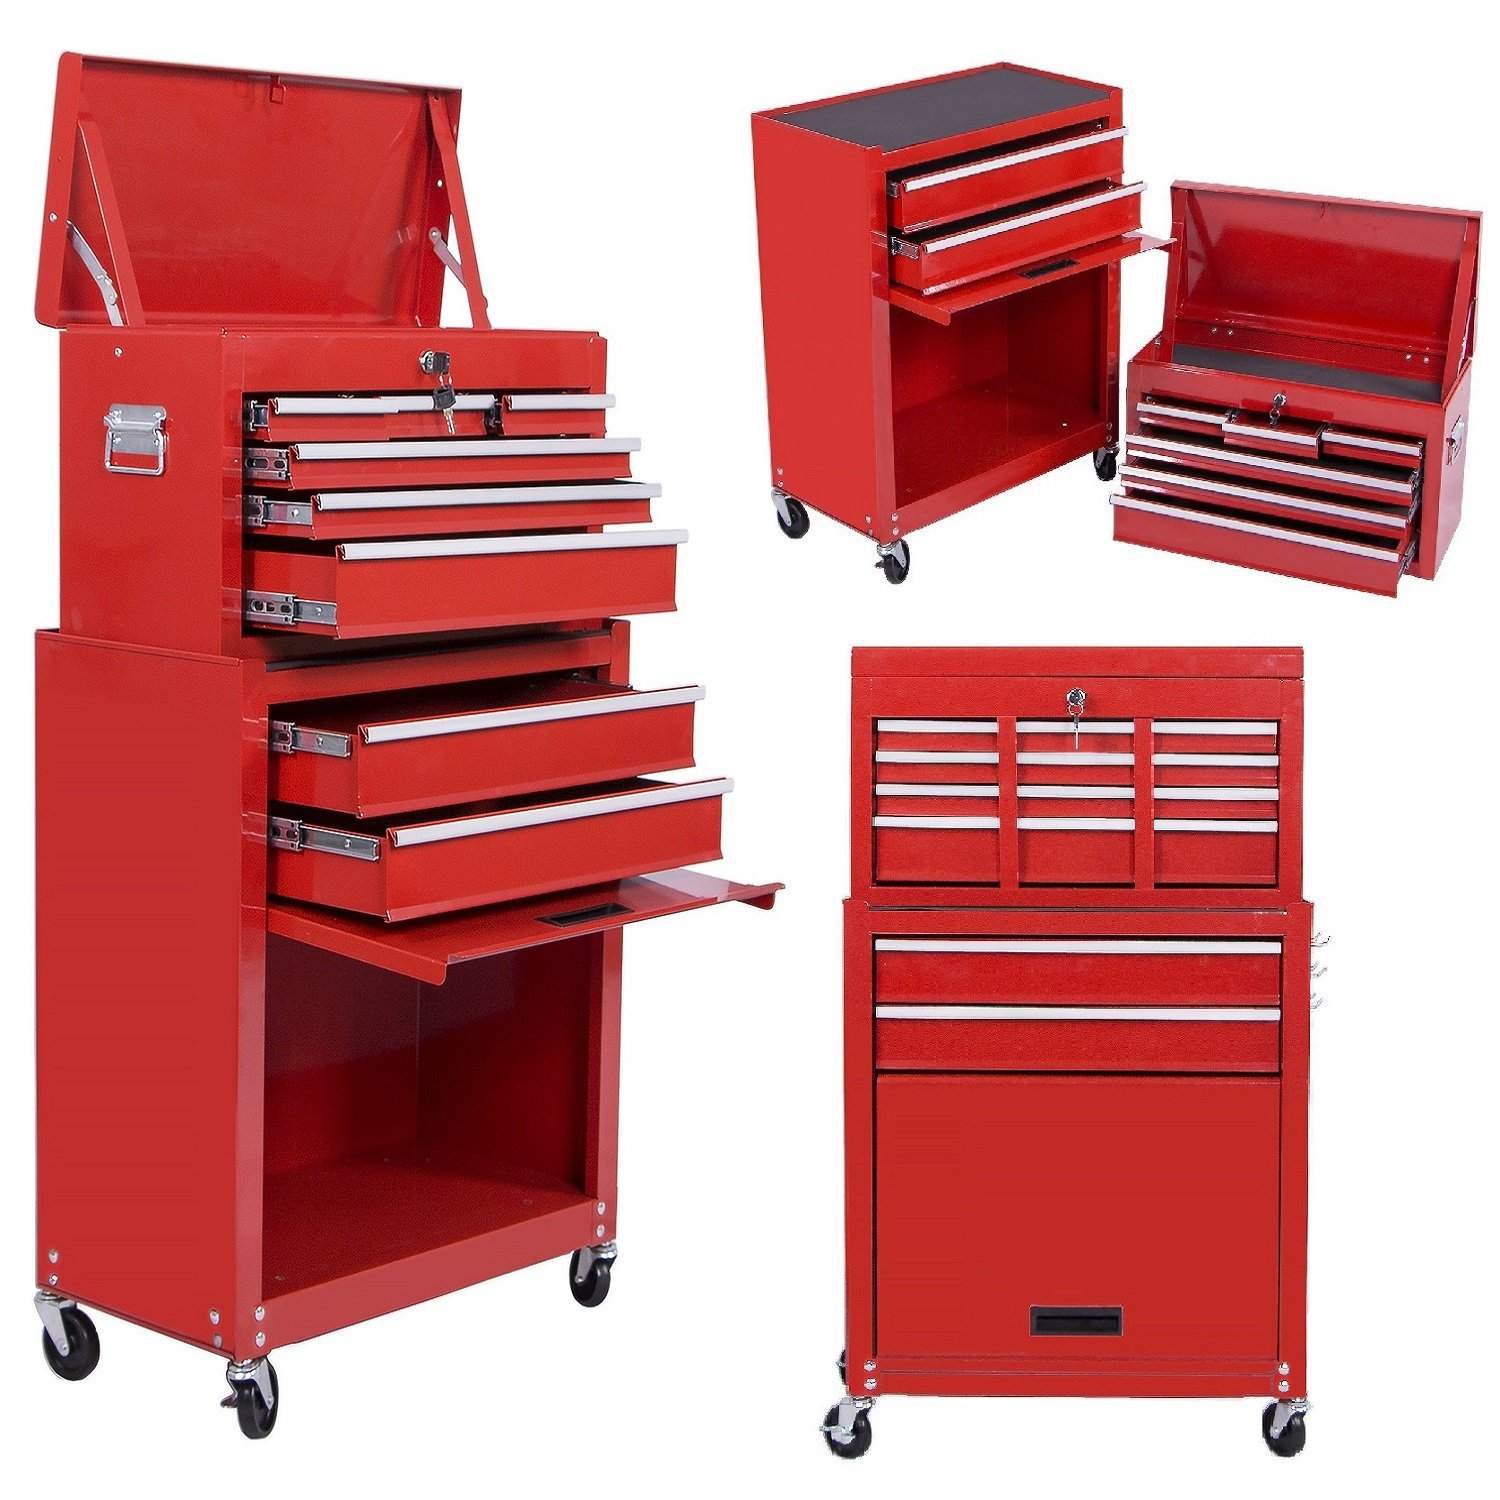 recently new waterloo a upgrade this toolbox purchased ihrchive tool box lab cabinet